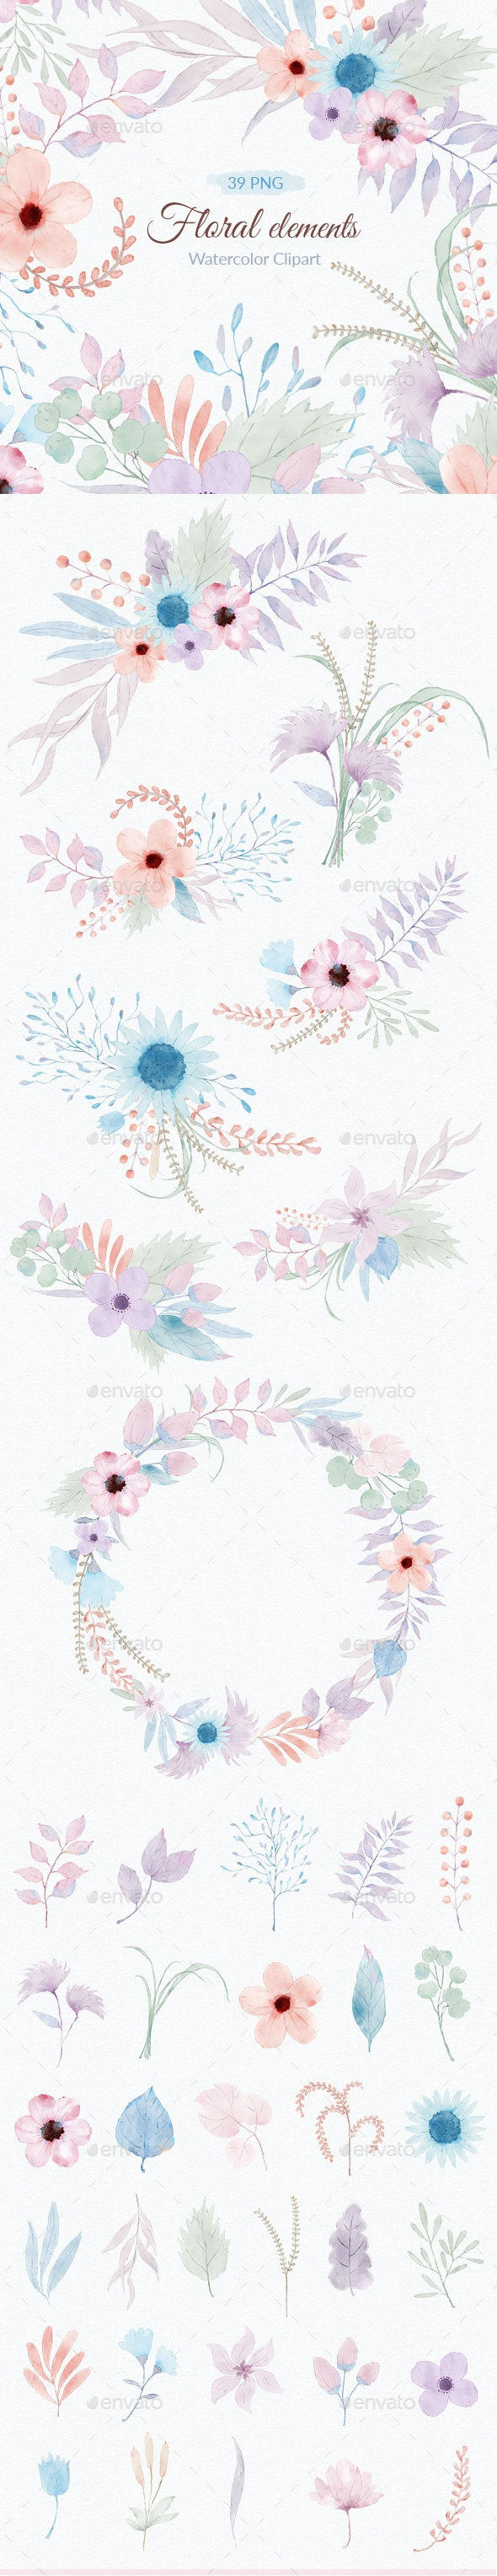 Floral Watercolor Illustrations Clipart PNG - Objects Illustrations